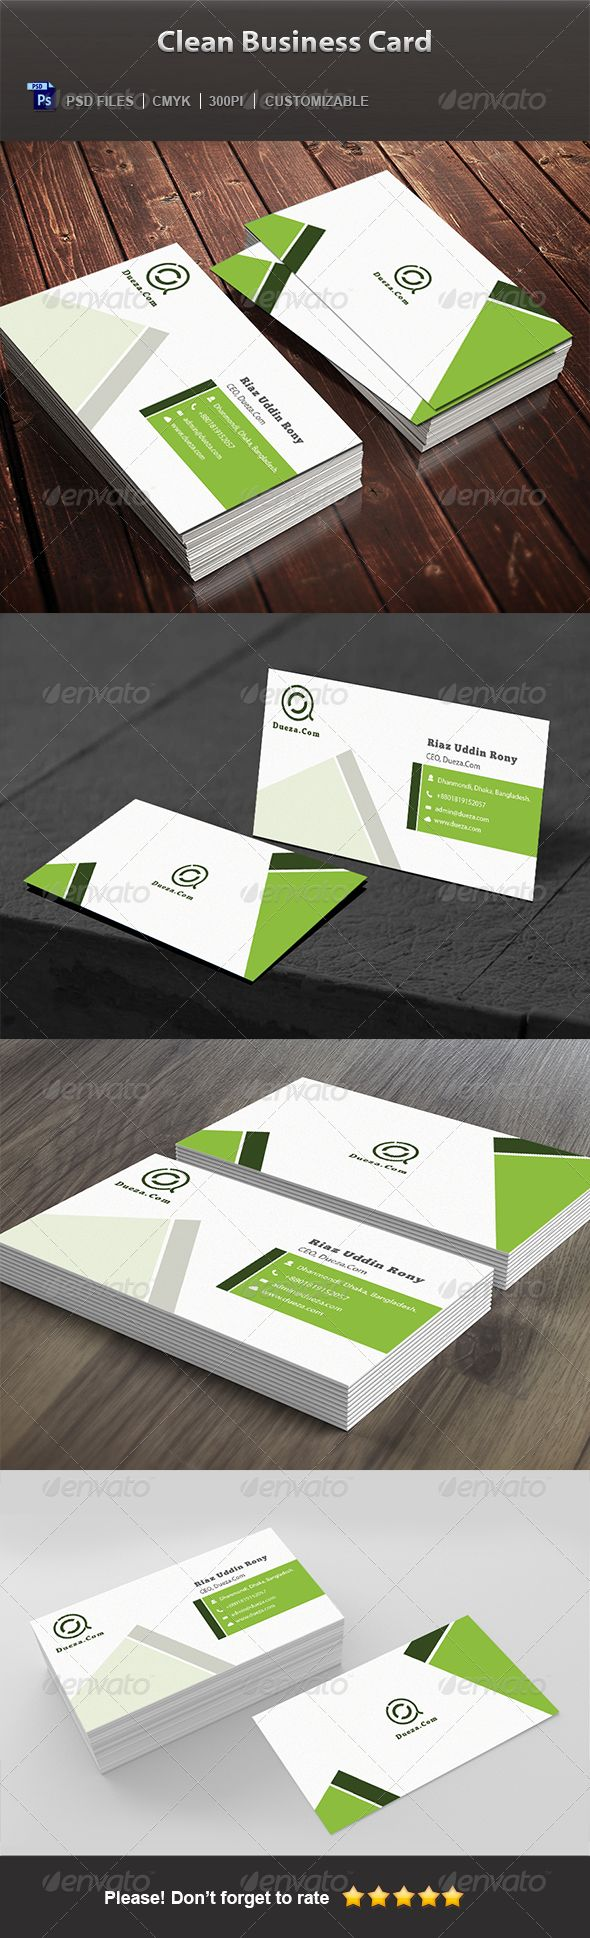 51 best blog for modern creative business card design images on clean business card is a simple and eye catching professional business cardis business card is ready to print reheart Gallery